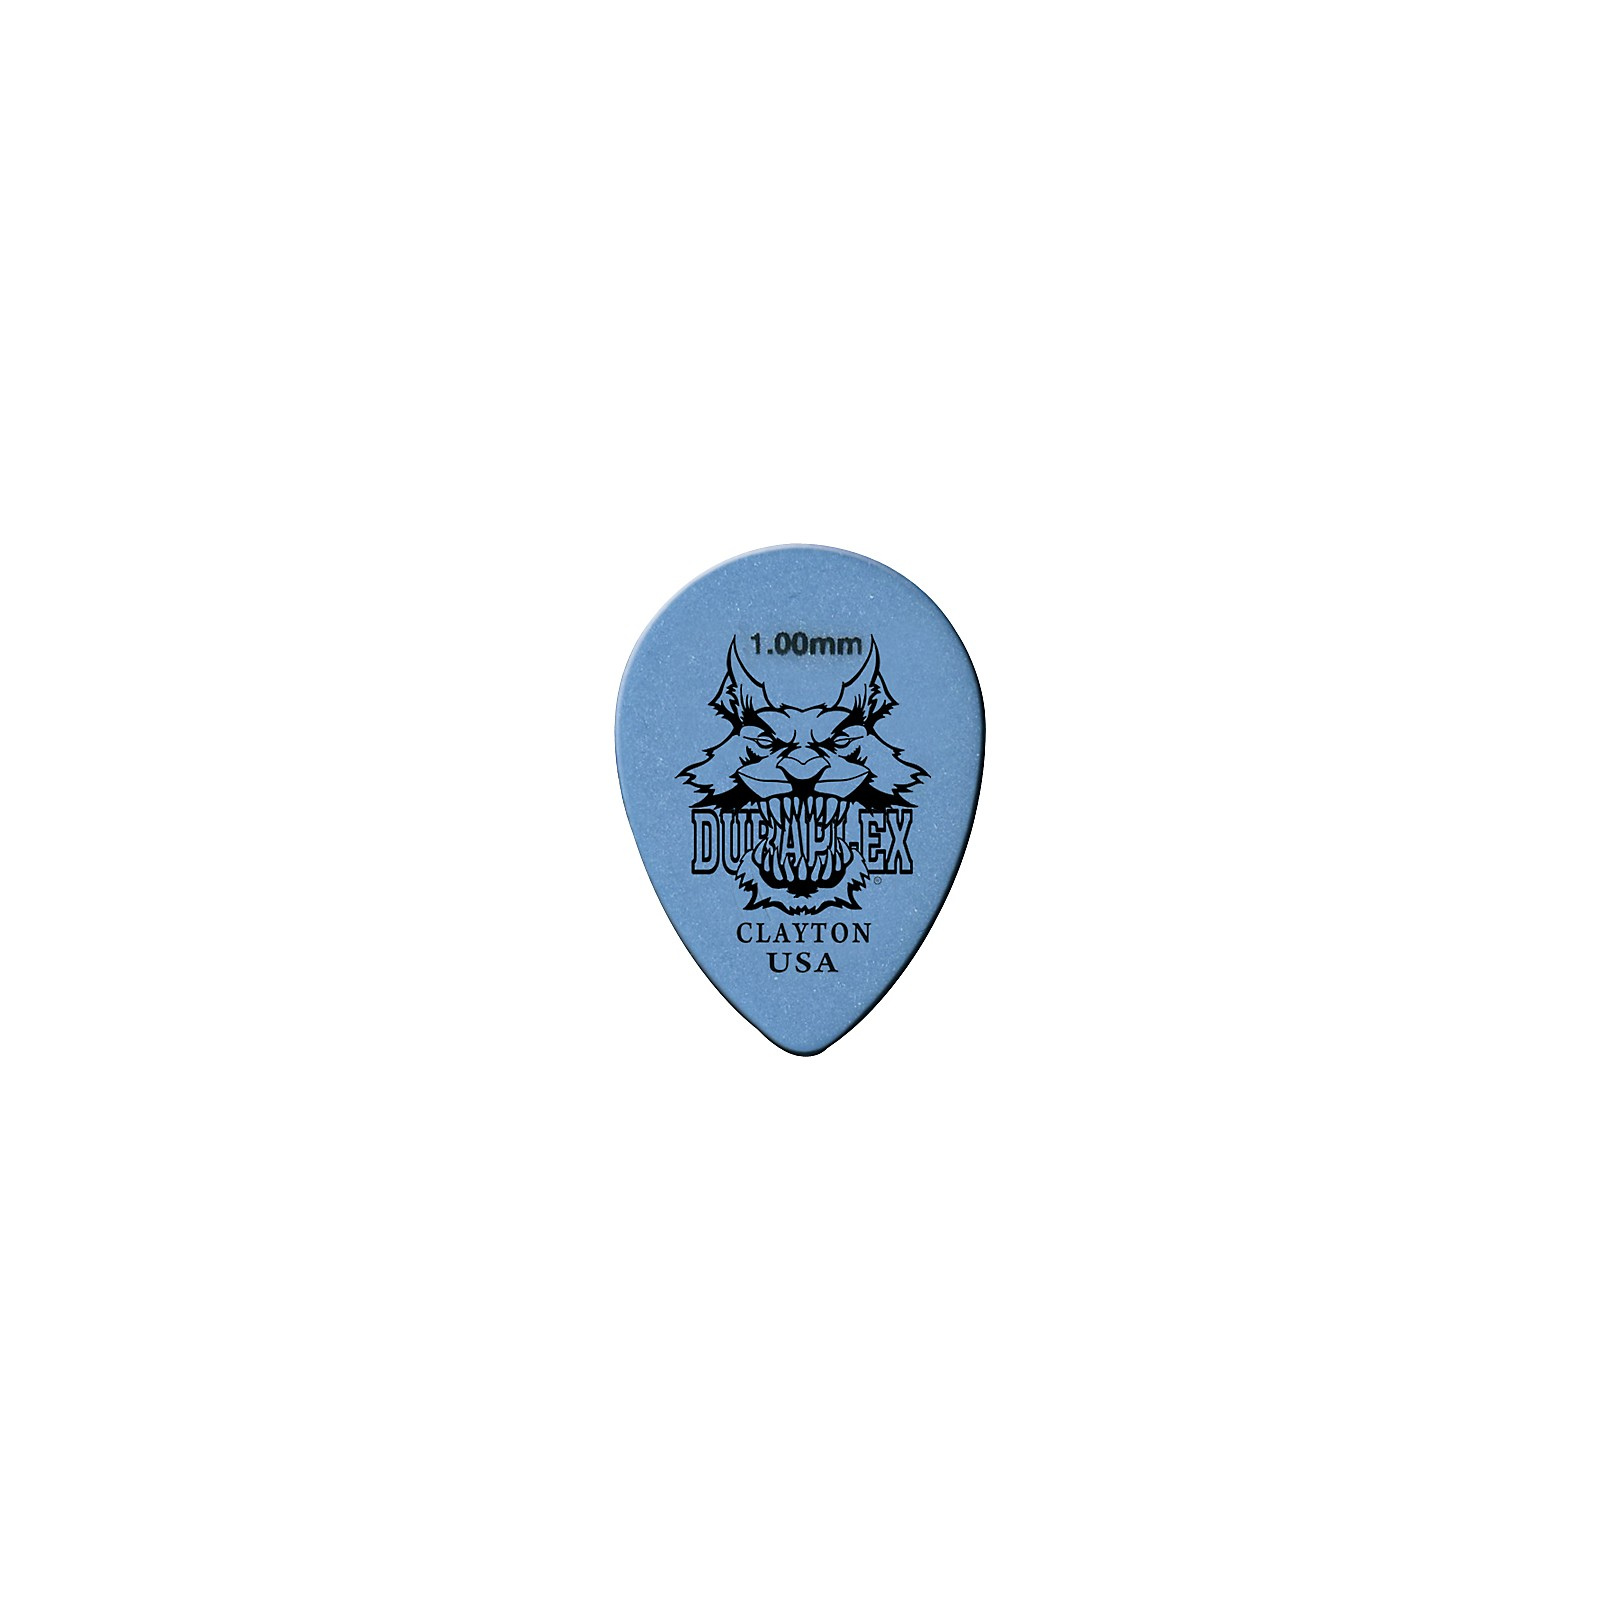 Clayton Duraplex Delrin Small Teardrop Picks 1 Dozen